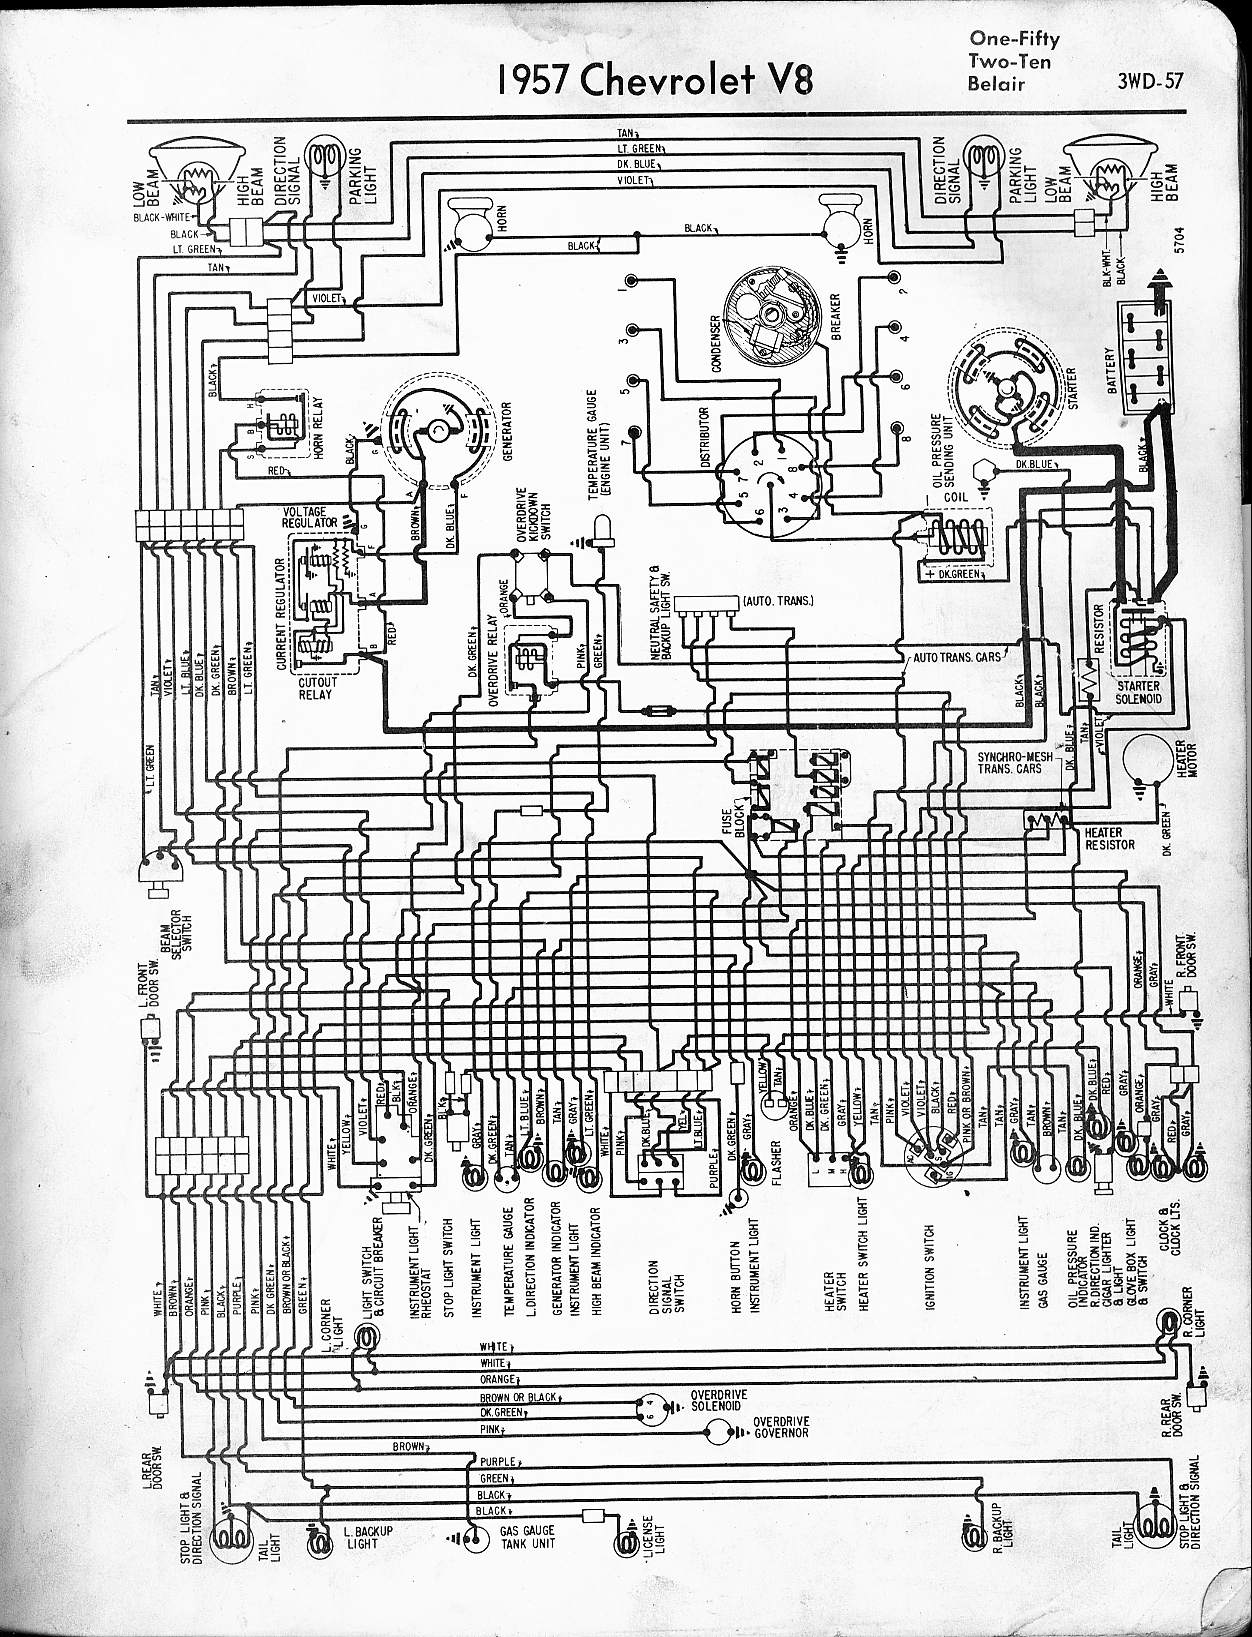 MWireChev57_3WD 057 57 65 chevy wiring diagrams 1957 chevy headlight switch wiring diagram at soozxer.org